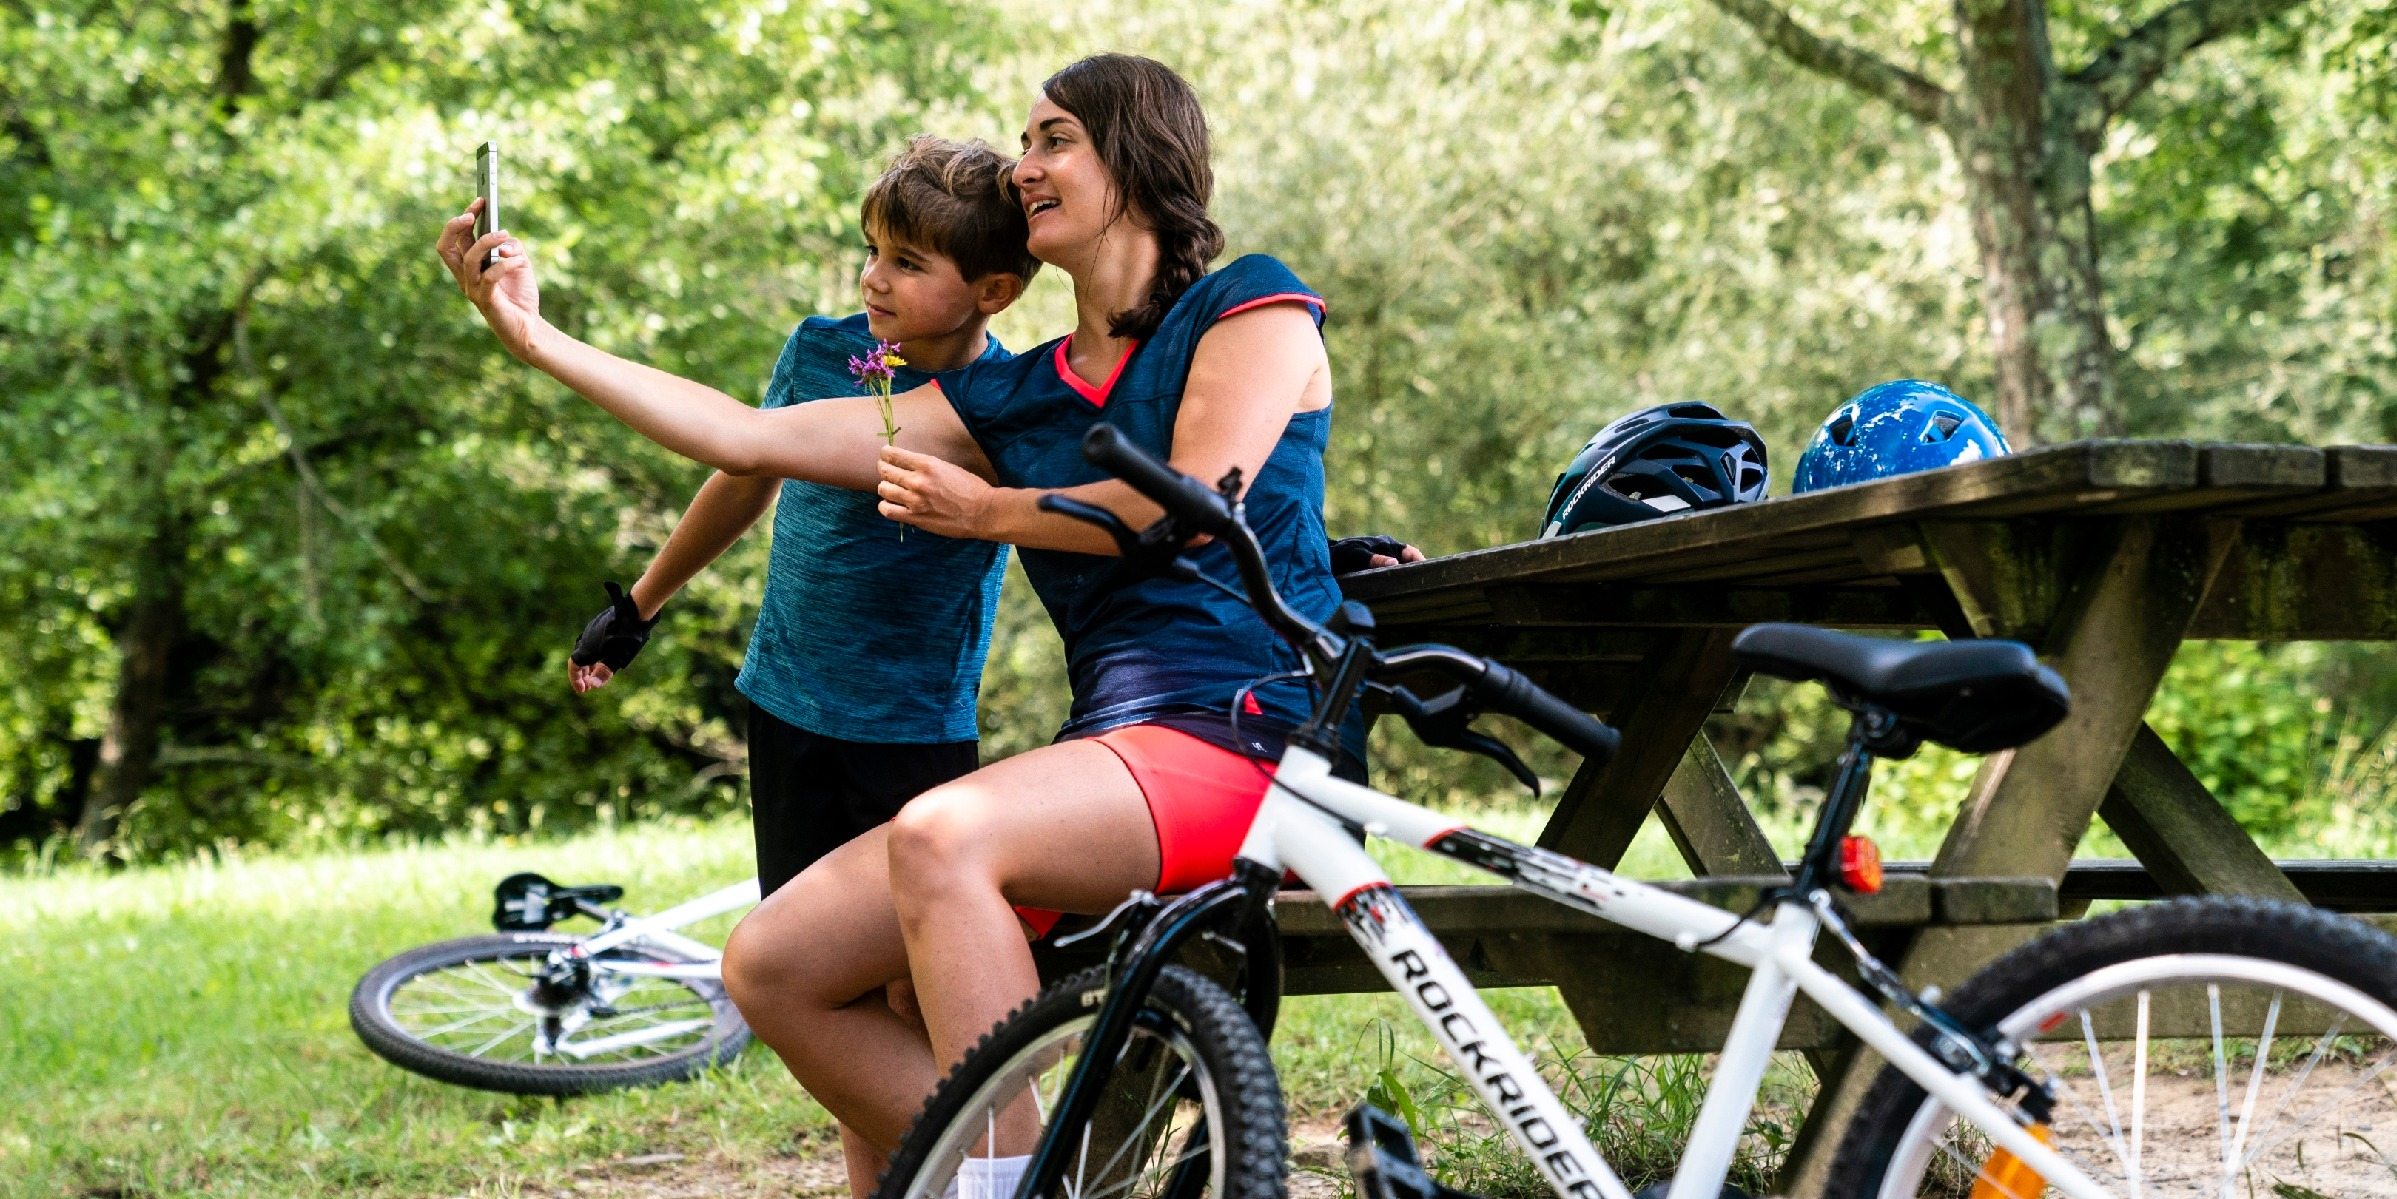 Who Can We Go Family Leisure Cycling With?